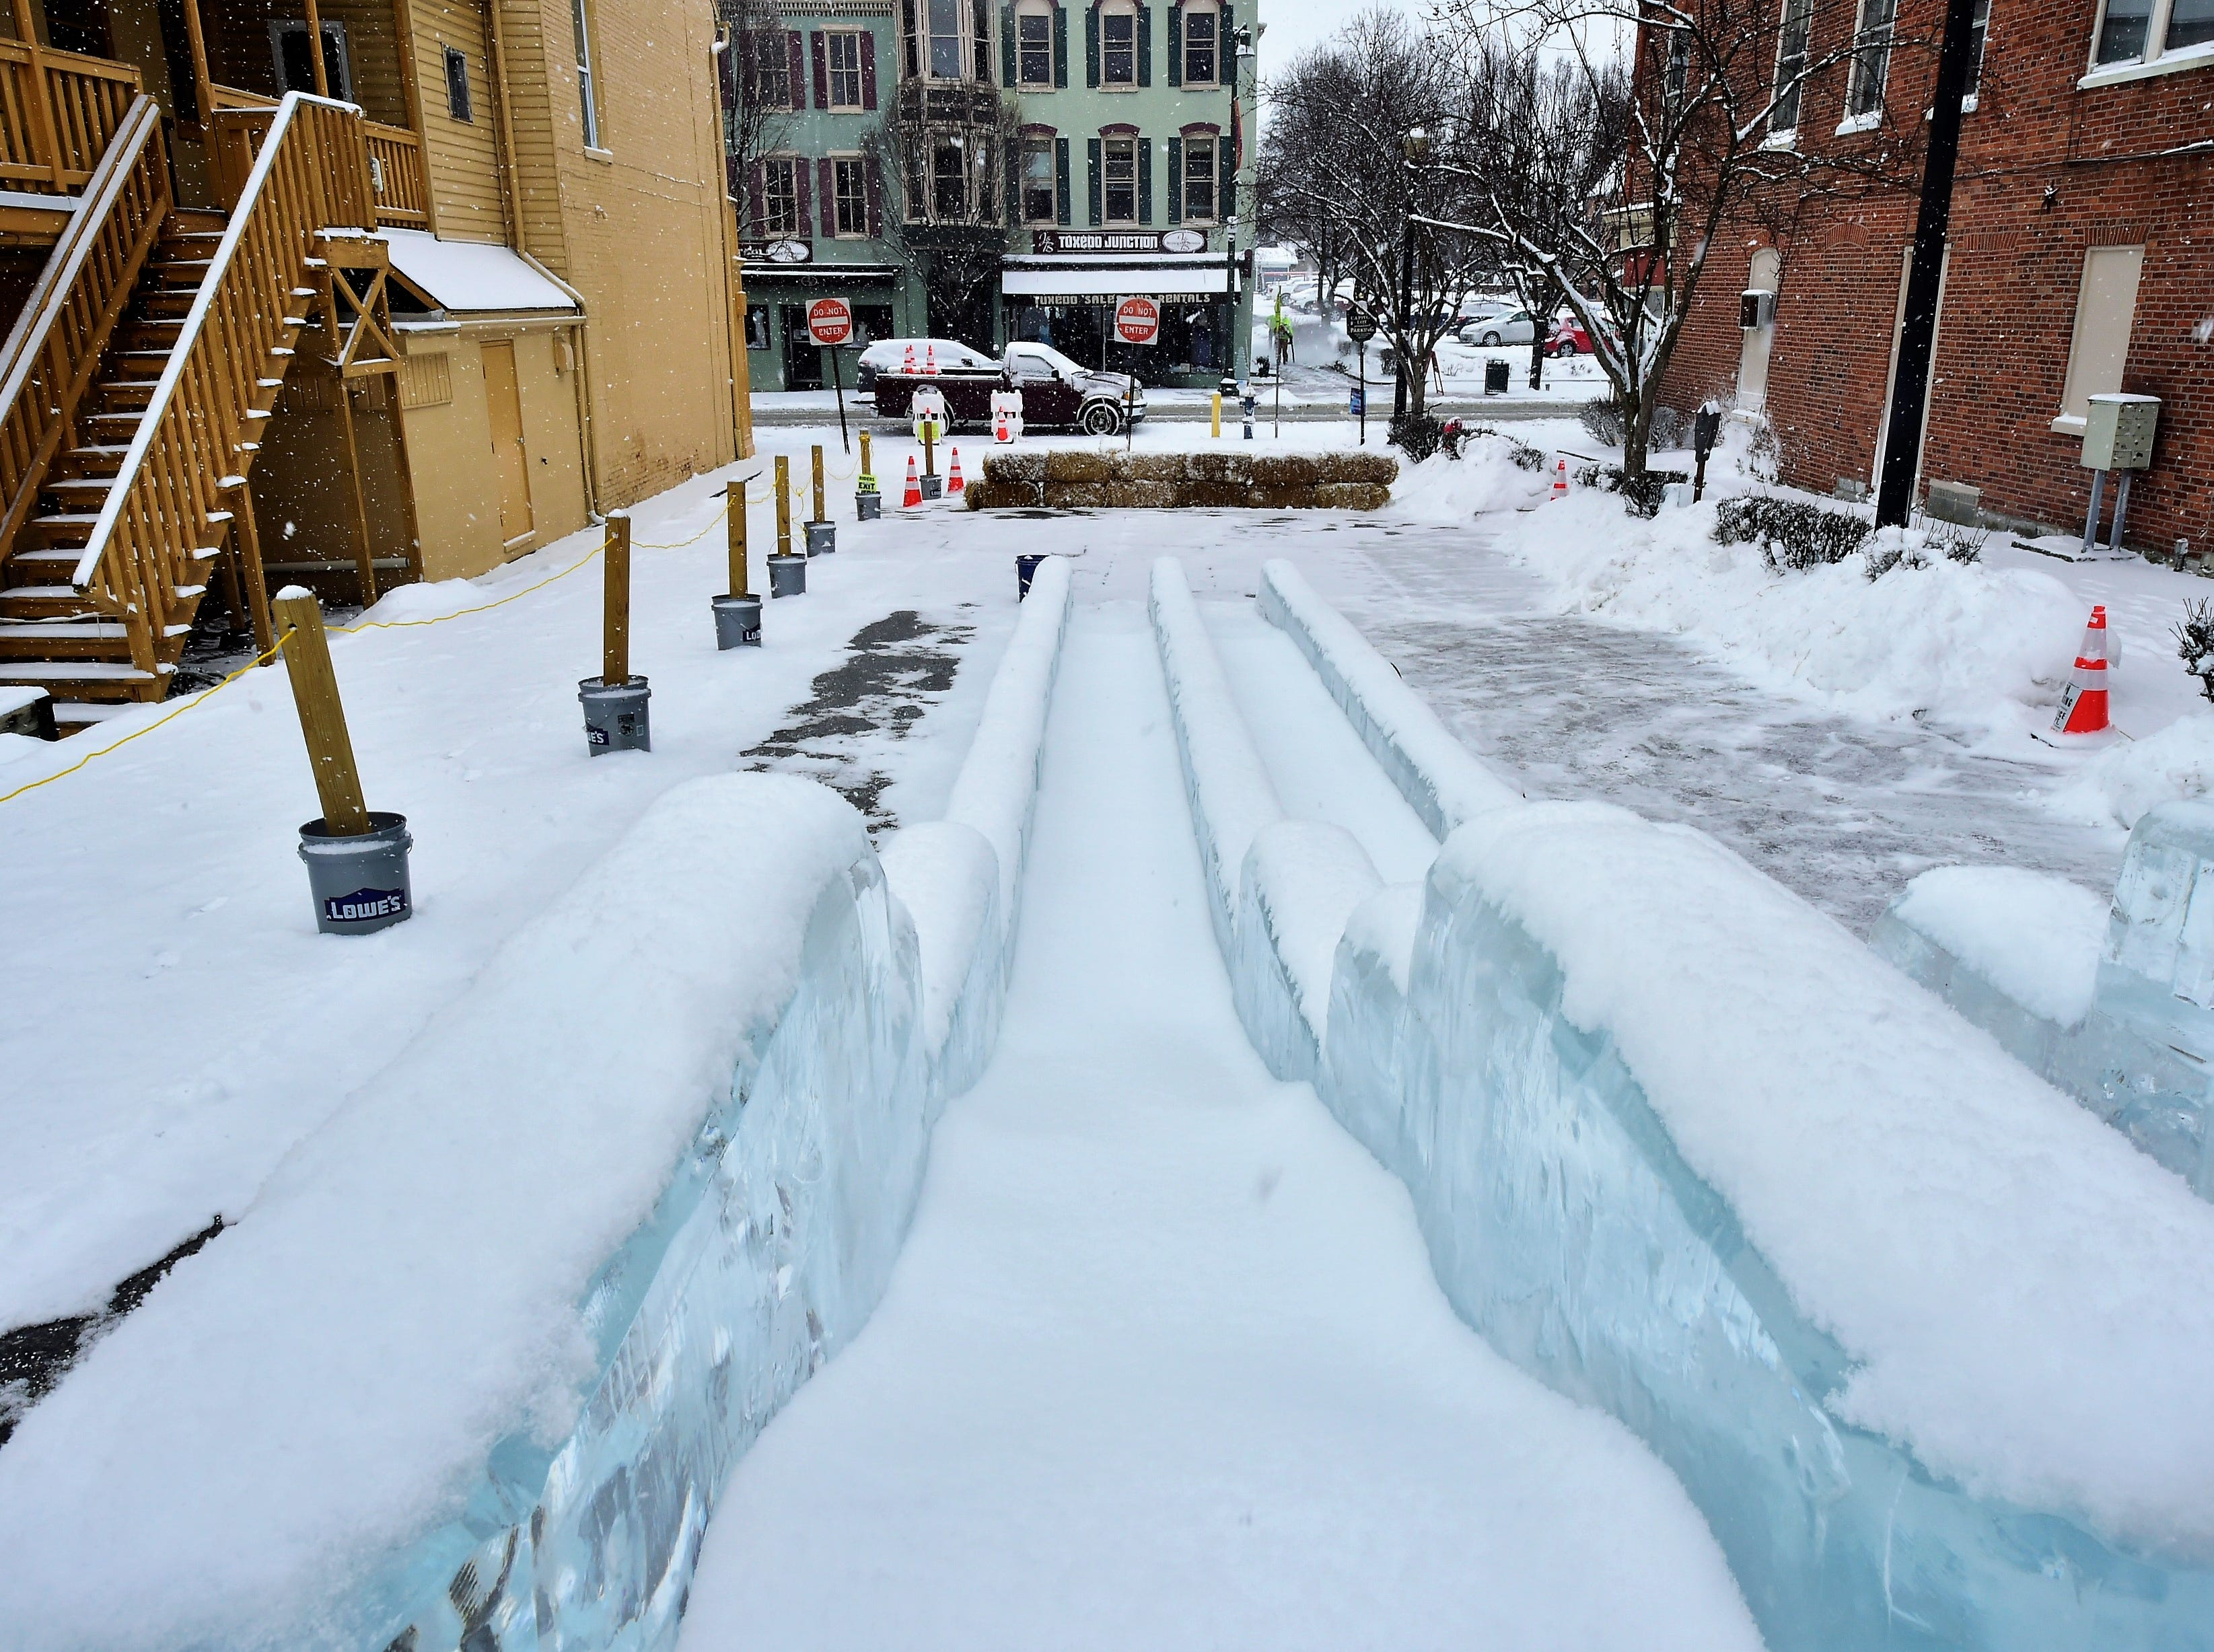 The view from the top of the 40-foot-long, double-wide ice slide, in the lot next to Gartenberg Jewelry on South Main St. DiMartino Ice Company carved around 80 ice sculptures for IceFest 2019 in Chambersburg. Here is a small fraction of them. All of the sculptures pictured in this gallery are located on South Main Street between the square and Washington Street.